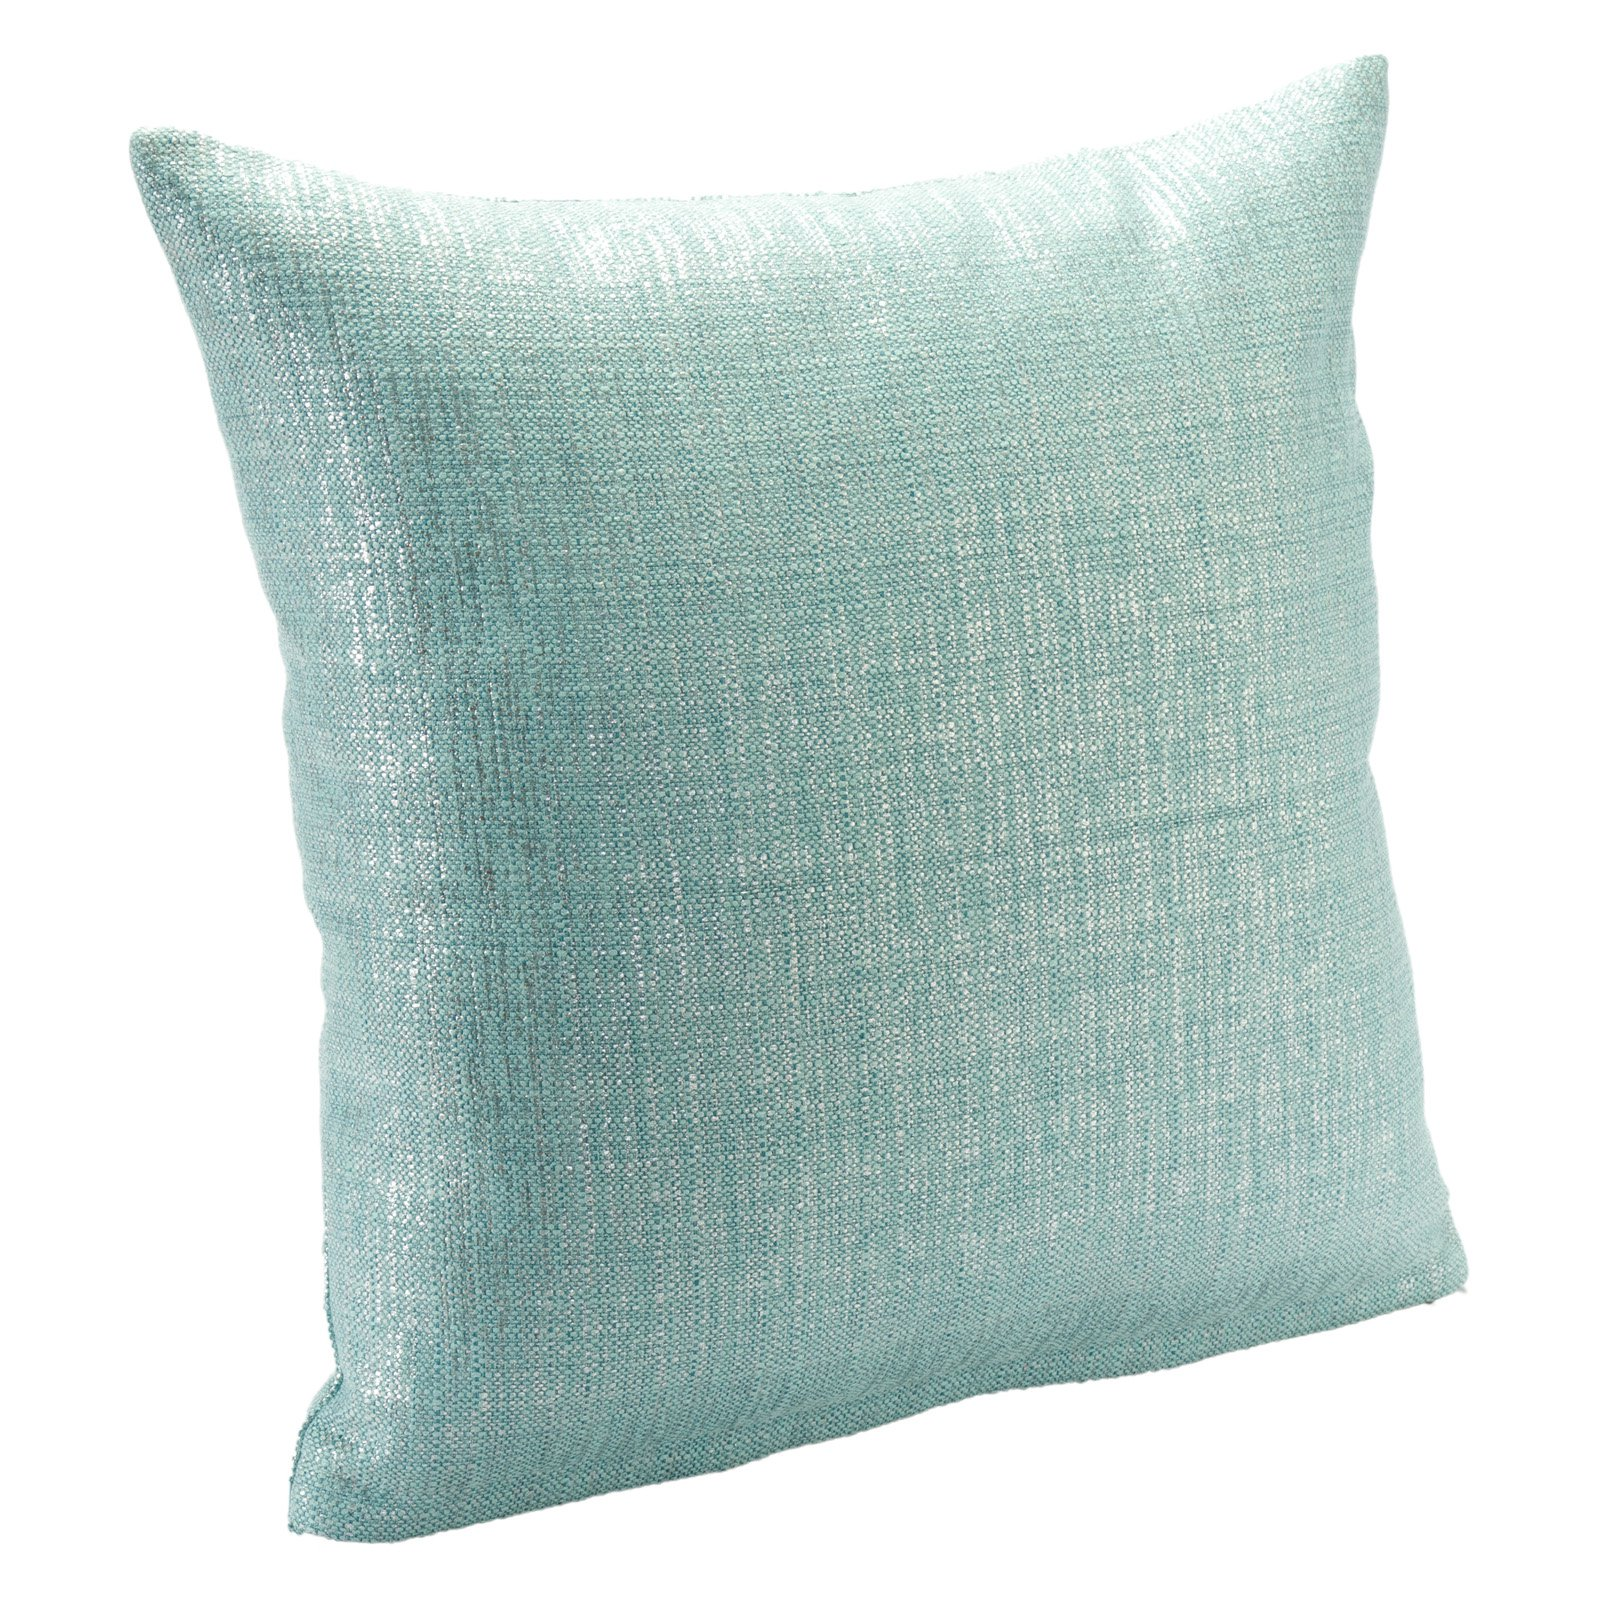 SIS Covers Sparkly Aqua Pillow